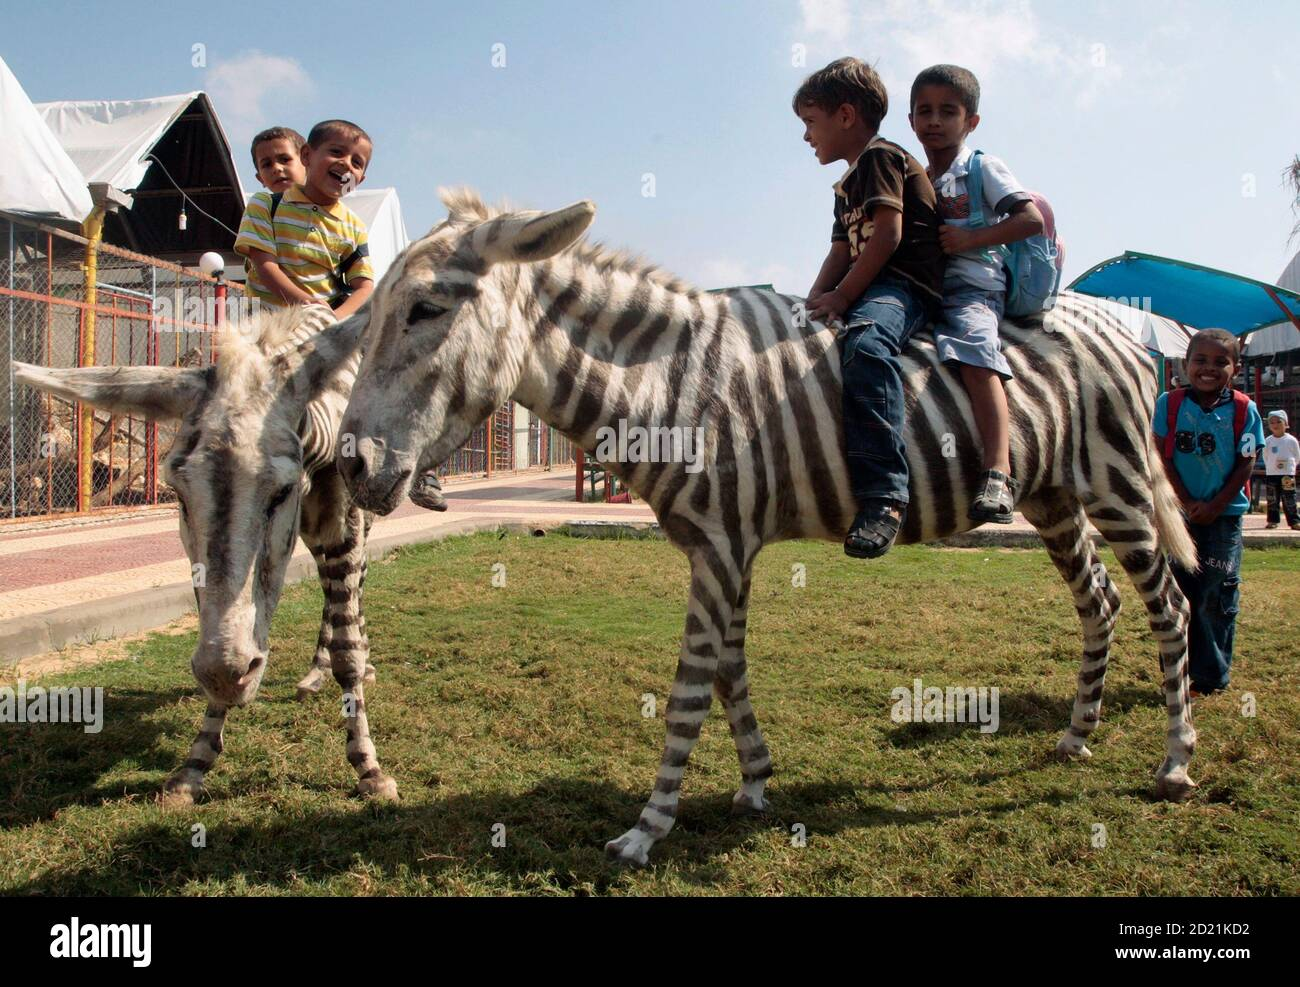 Palestinian boys ride dyed donkeys at Marah Land zoo in Gaza City October 8, 2009. Two white donkeys dyed with black stripes delighted Palestinian kids at a small Gaza zoo on Thursday who had never seen a zebra in the flesh. A genuine zebra would have been too expensive to bring into Israel-blockaded Gaza via the smuggling tunnels under the border with Egypt, said zoo owner Mohammed Bargouthi. REUTERS/Mohammed Salem (GAZA SOCIETY ENVIRONMENT ANIMALS IMAGES OF THE DAY) Stock Photo